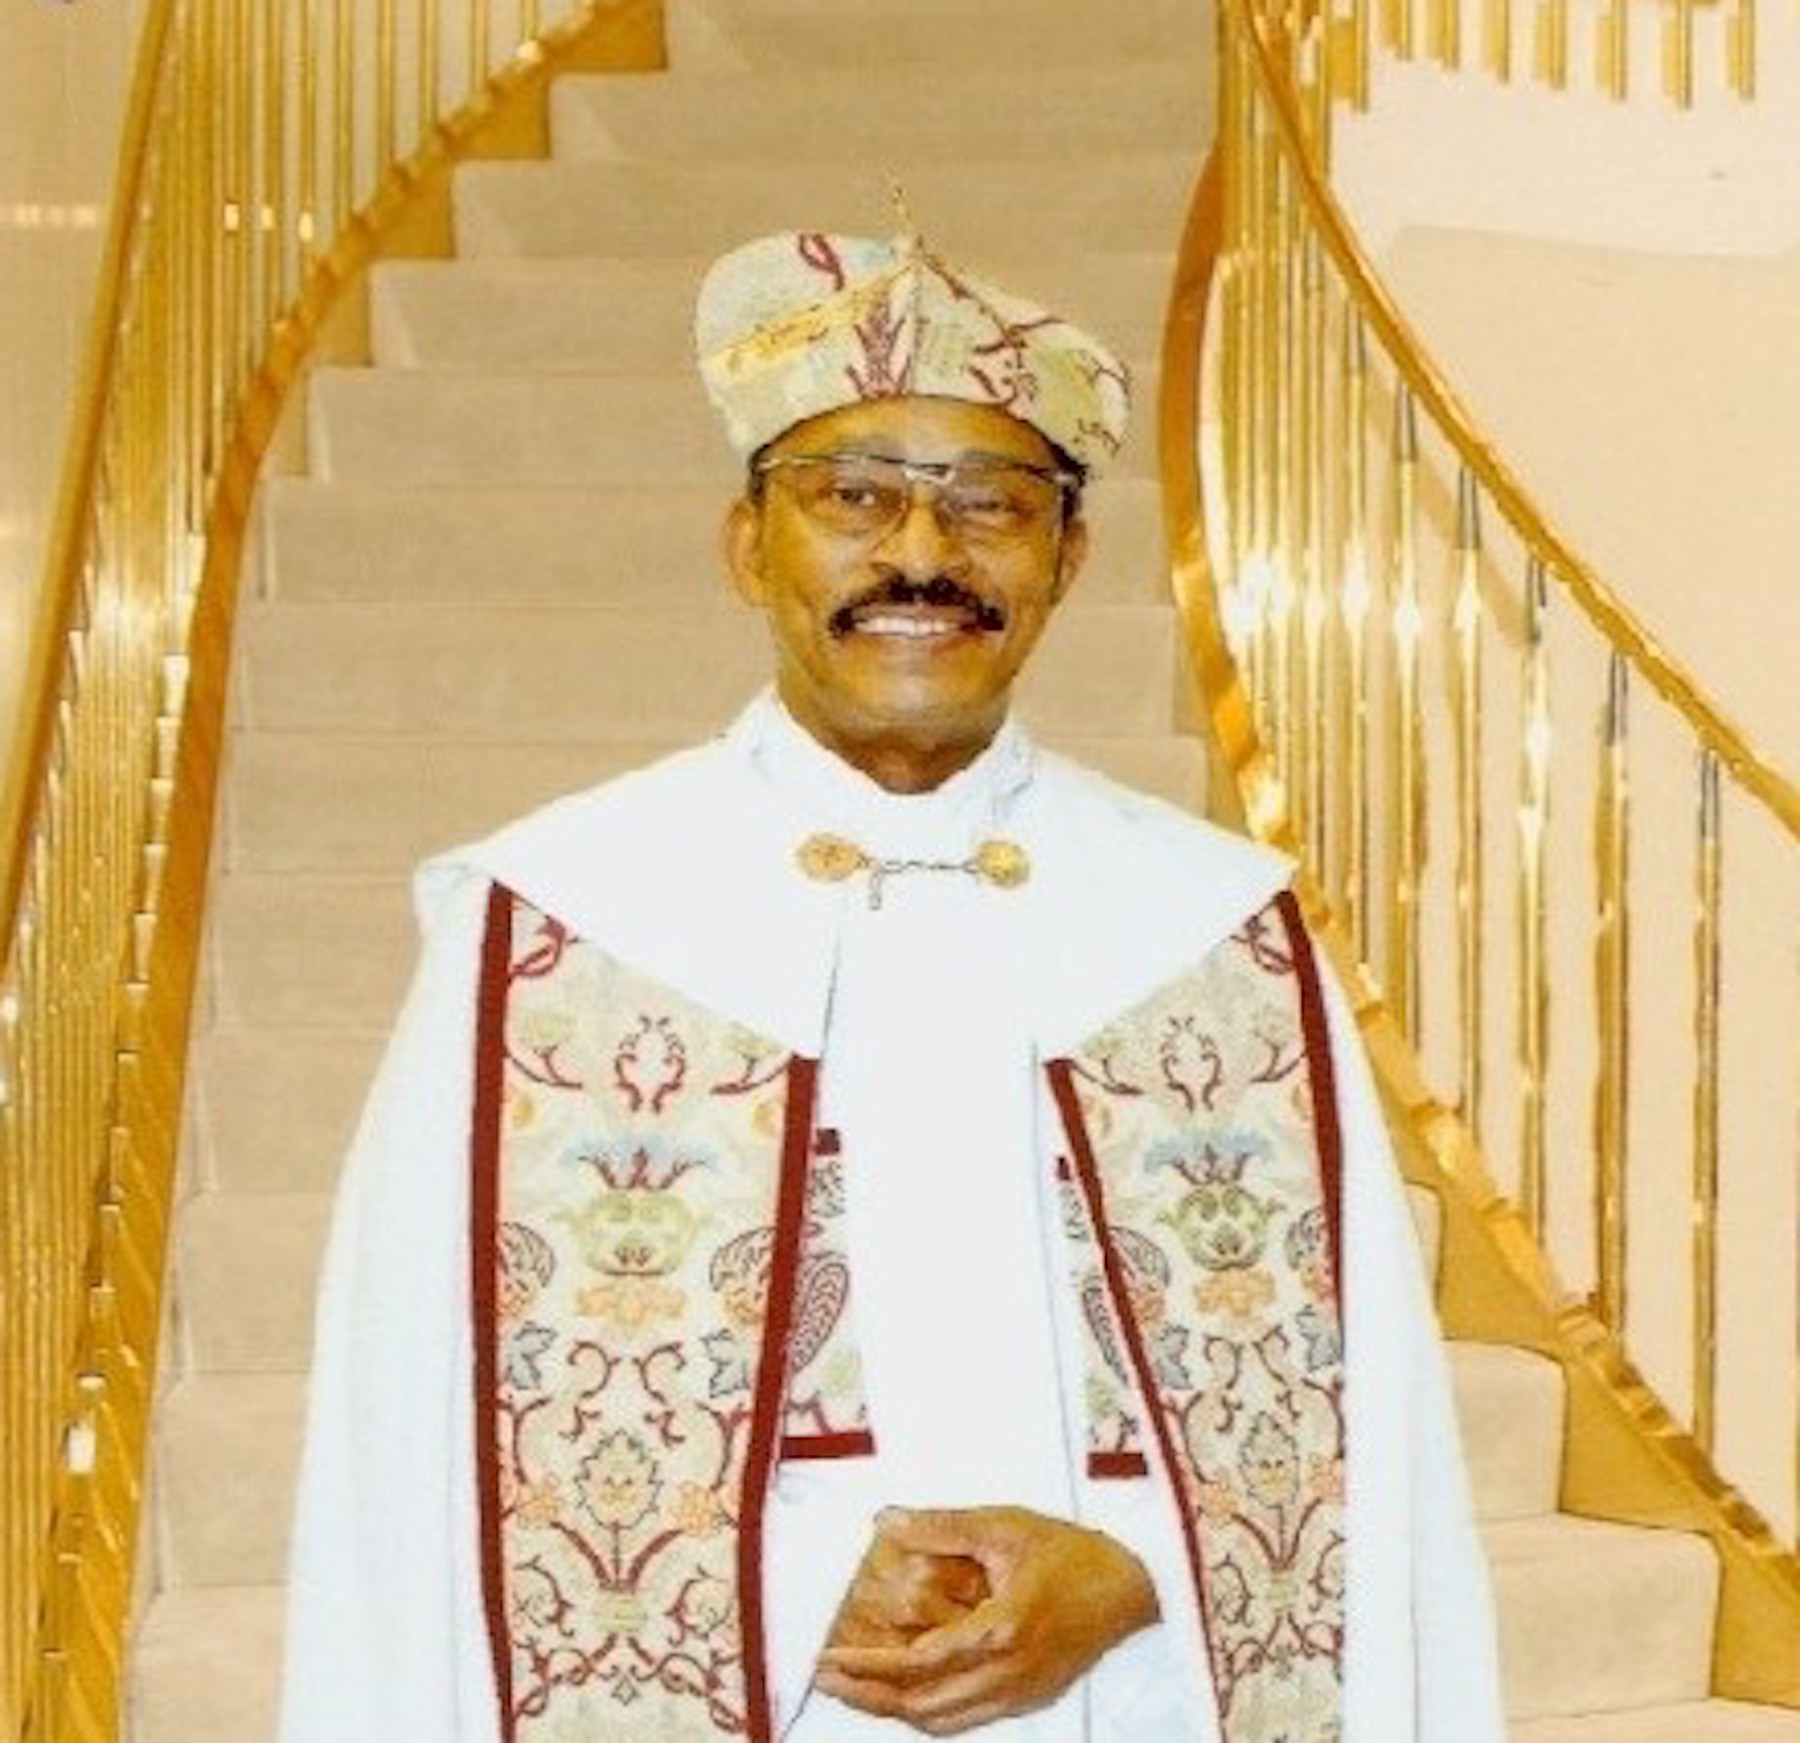 Archbishop Lucius Hall, founder and pastor of First Church of Love and Faith, 2140 W. 79th St.